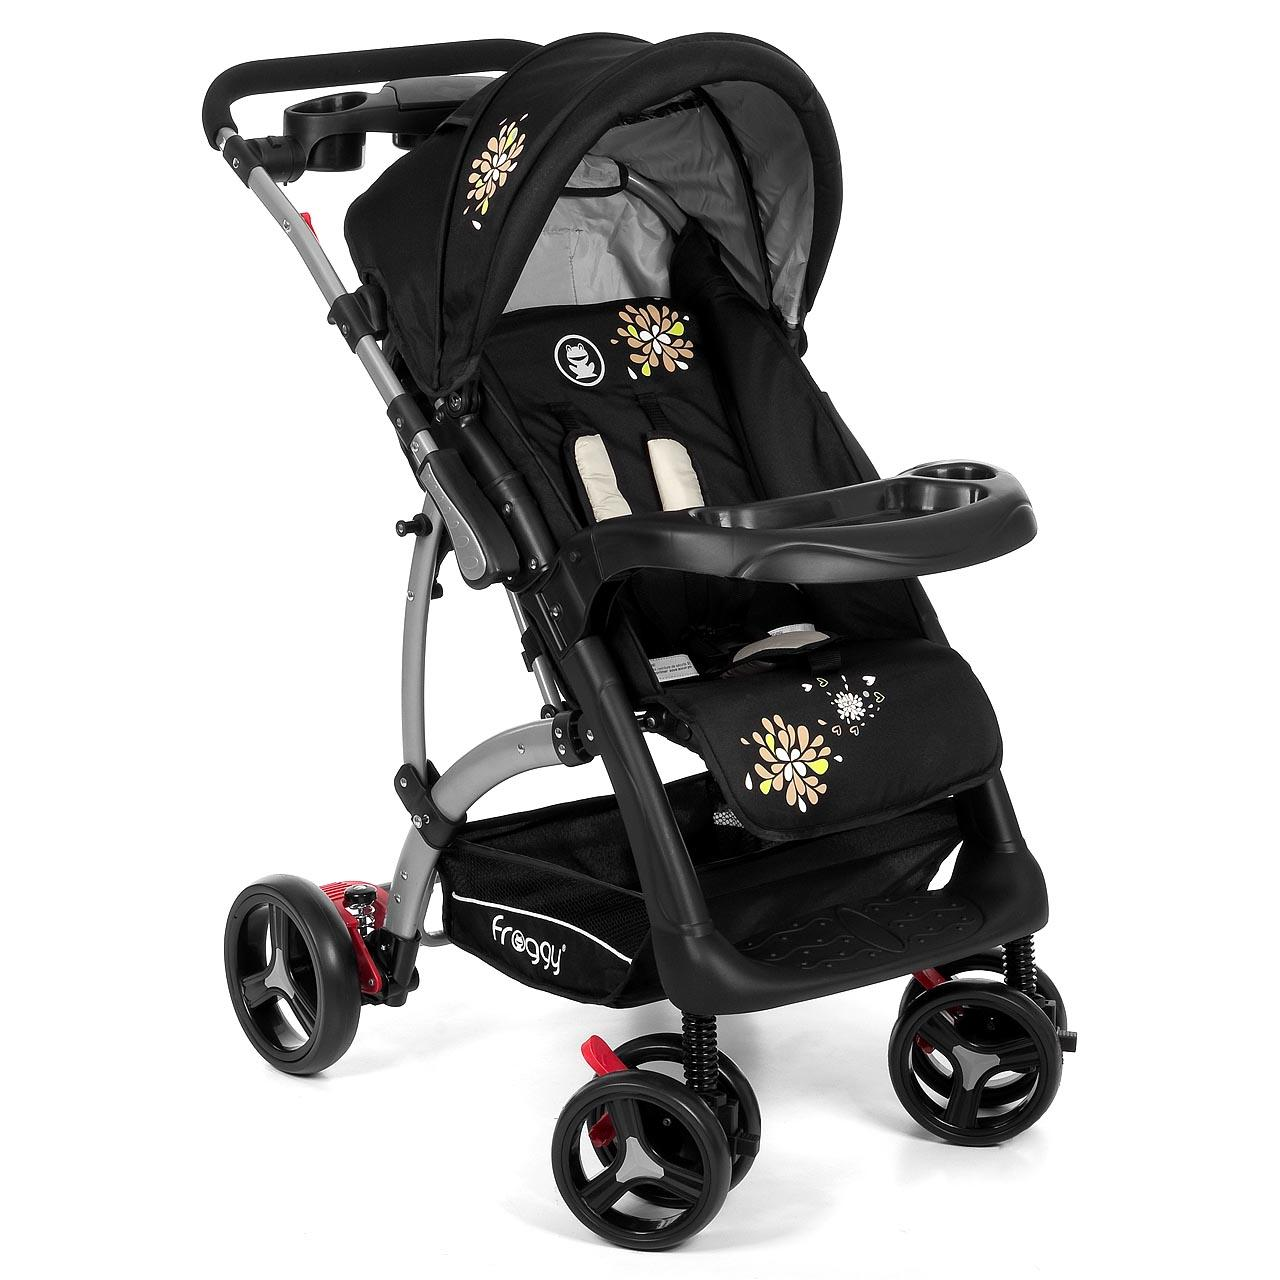 kinderwagen ranger s4 buggy jogger sportwagen babywagen. Black Bedroom Furniture Sets. Home Design Ideas